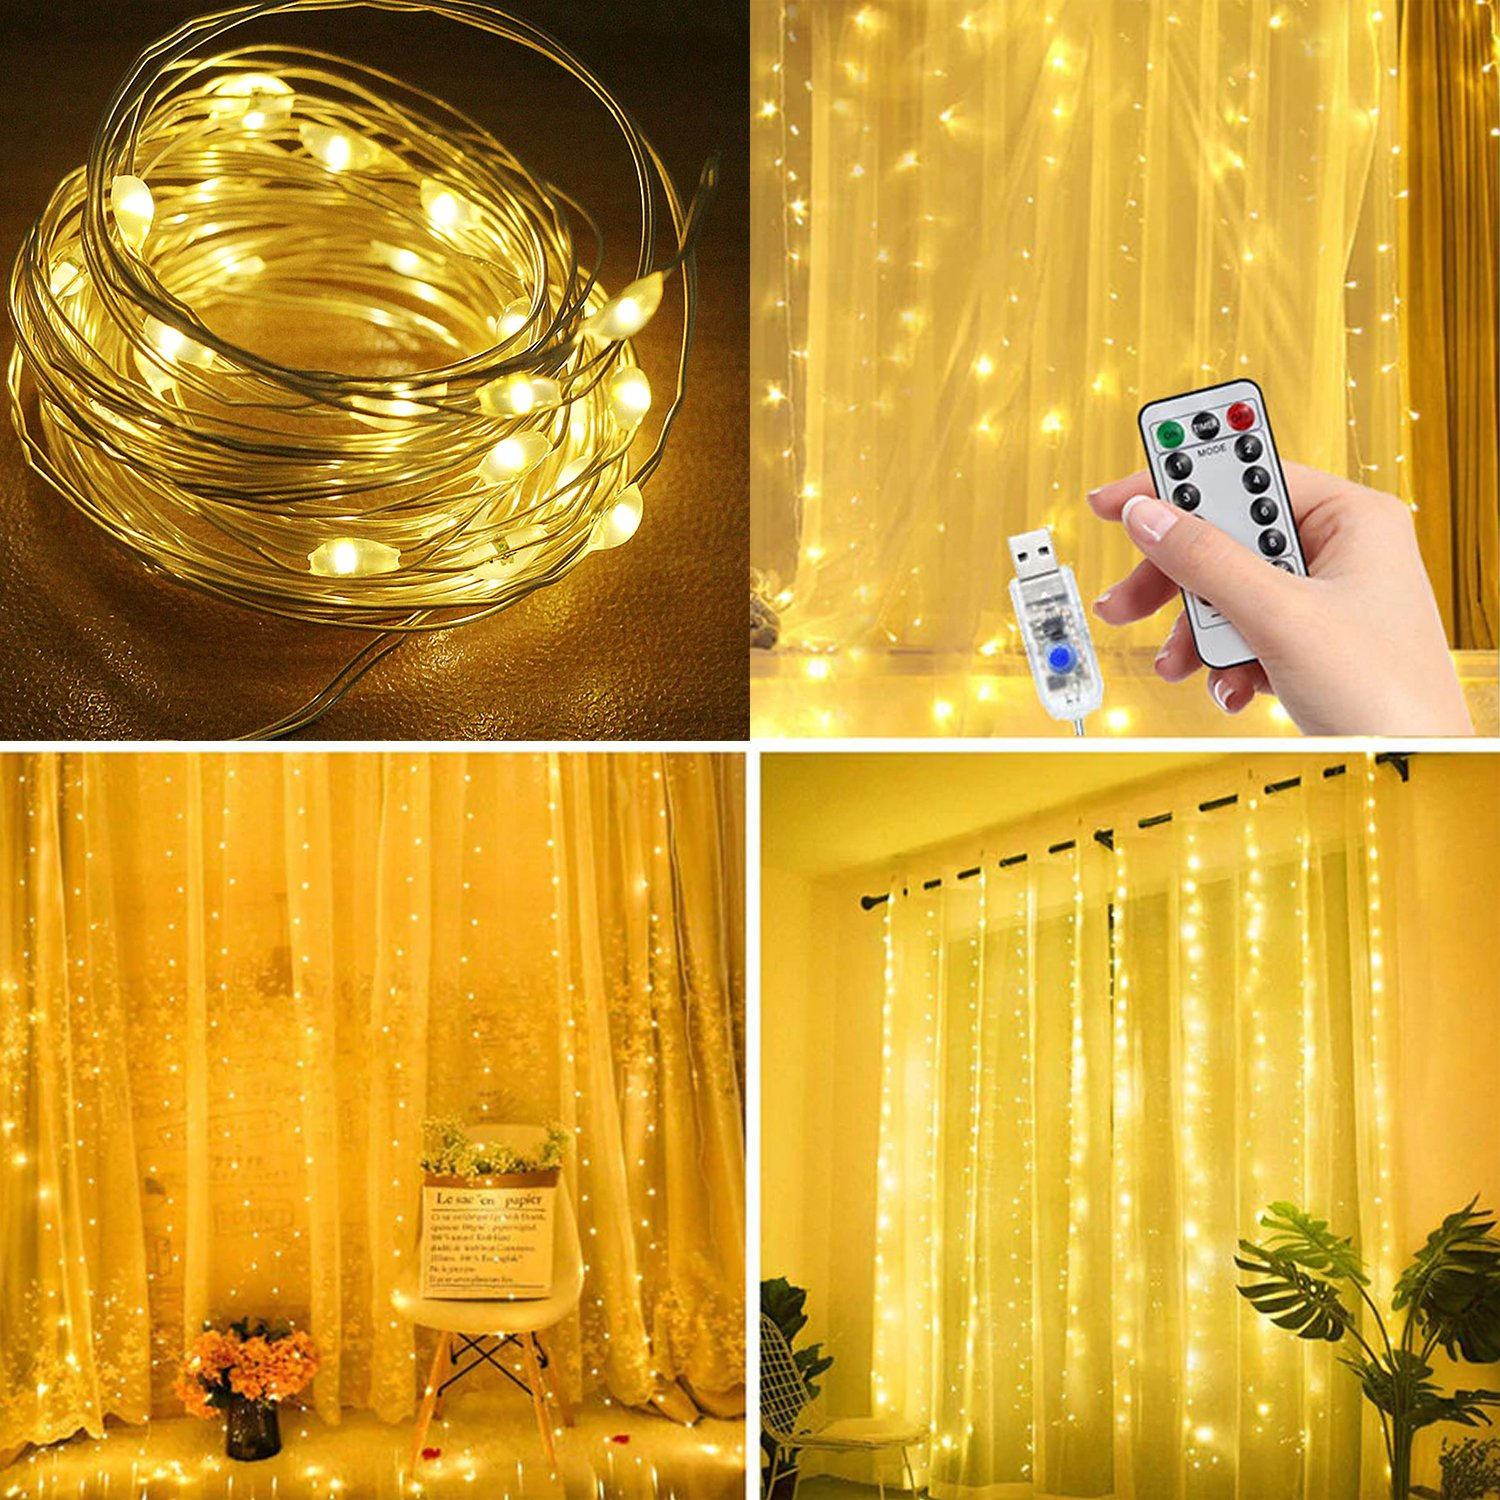 300 led waterproof curtain light with hooks 3mx3m fairy string lights with timer 8 modes adjustable brightness usb plug remote control for bedroom